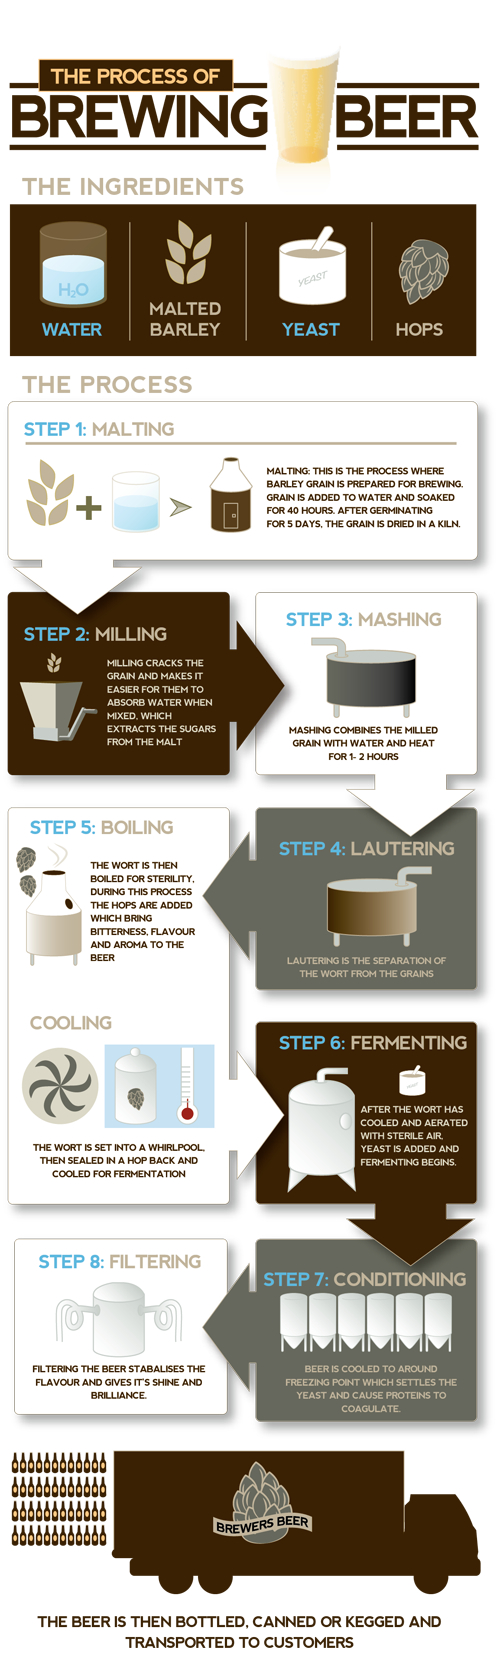 process-of-brewing